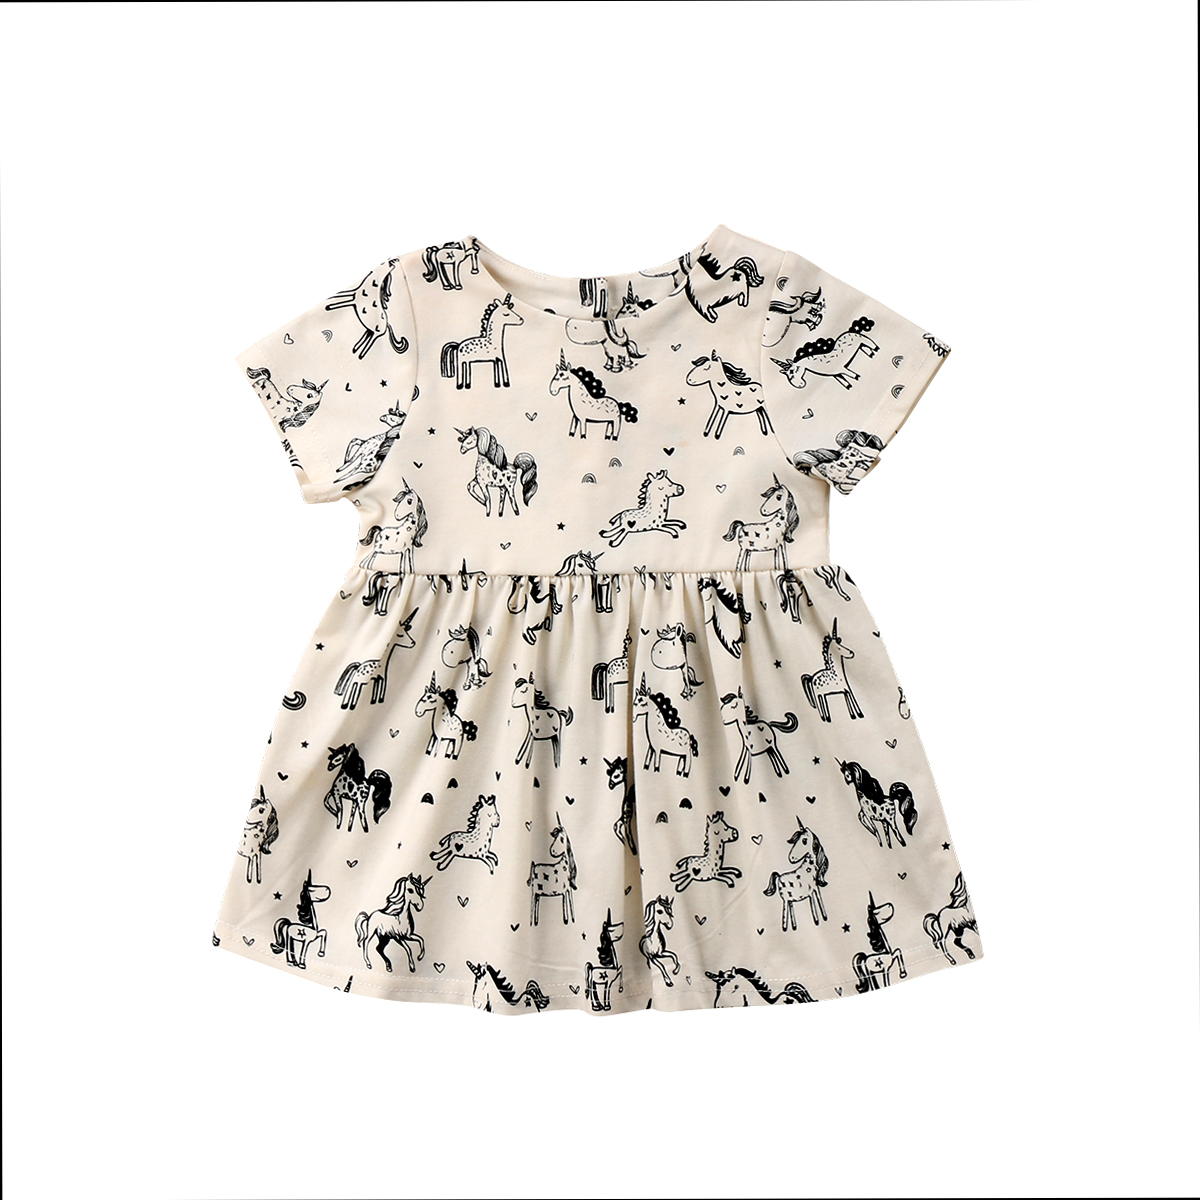 Toddler Kids Baby Girl Animal Short Sleeve Unicorn Dress Outfit Beige Dresses Clothes